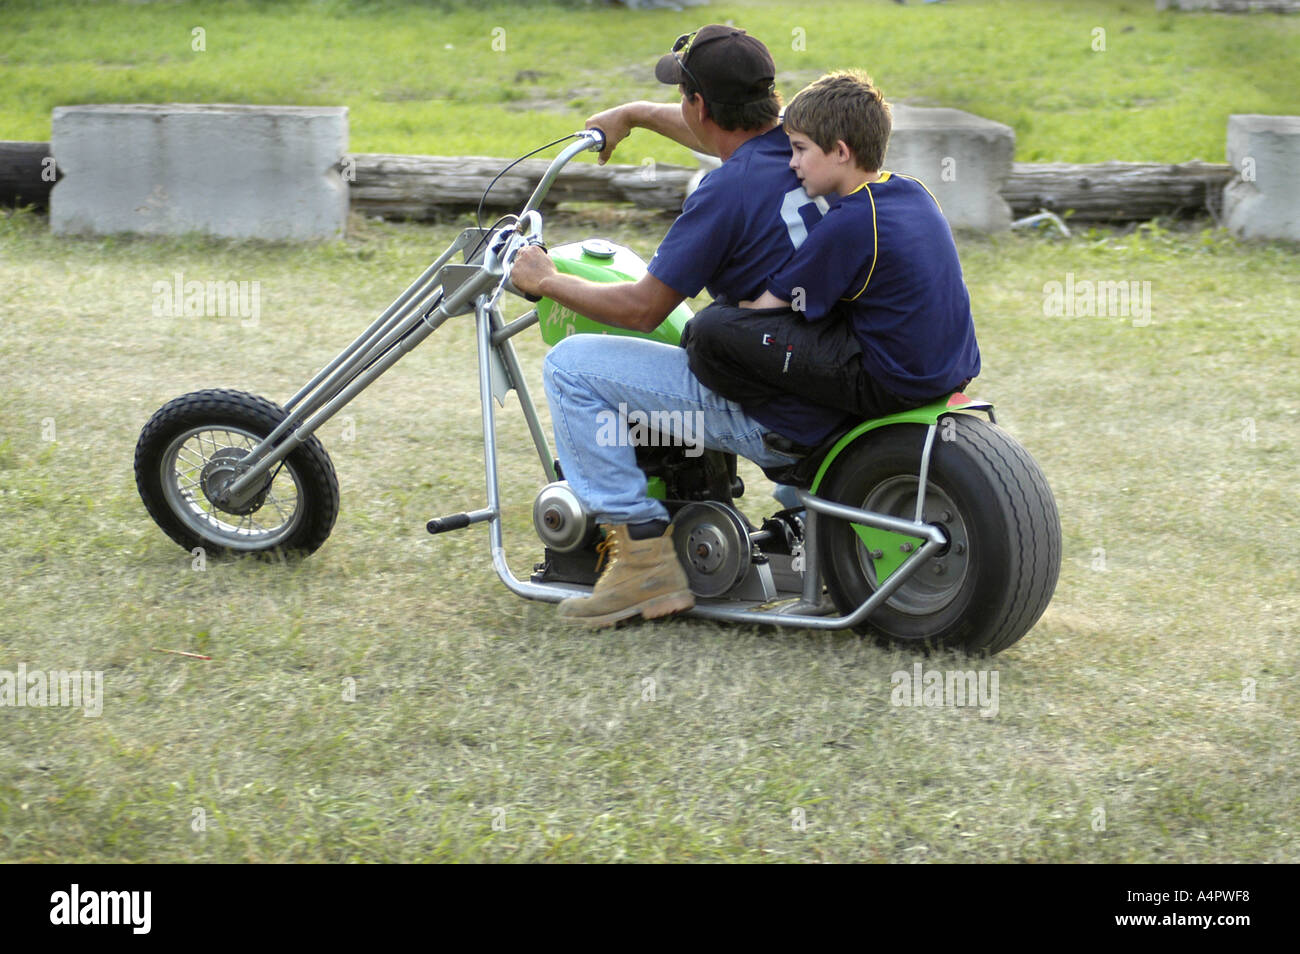 Dad and son in pits on chopper mini bike at dirt track motorcycle race Croswell Michigan USA - Stock Image